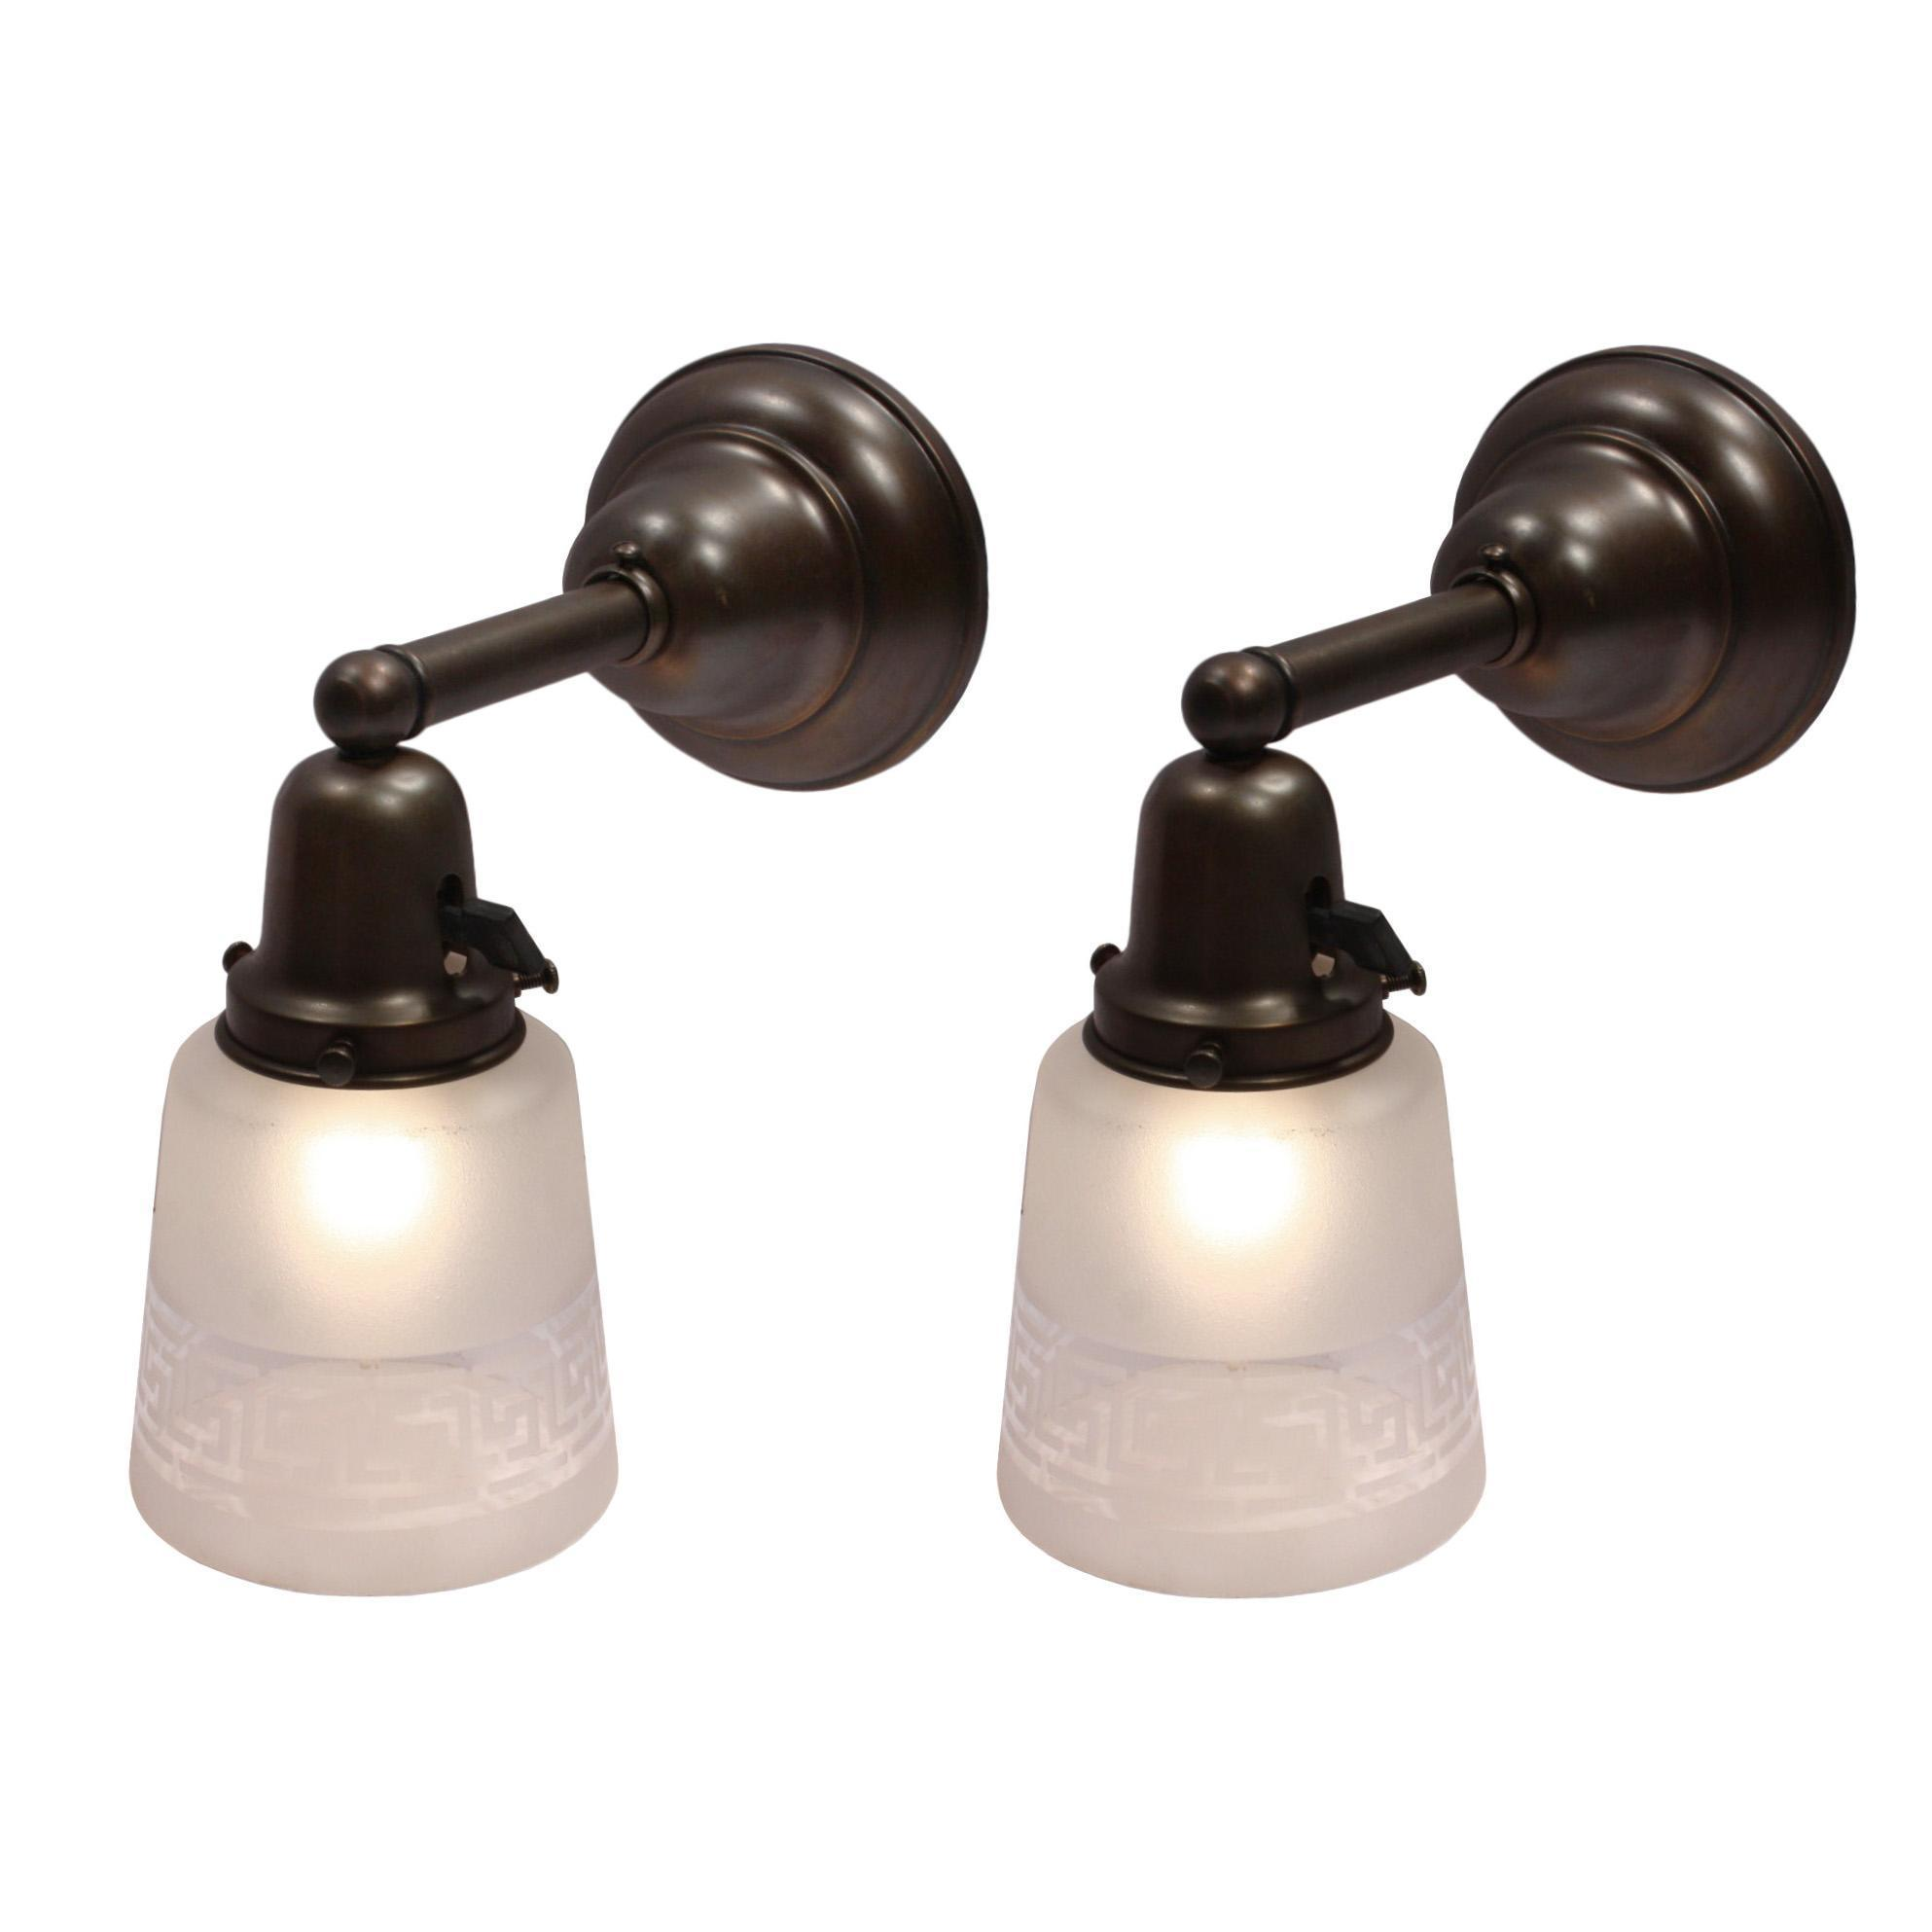 Pair of Antique Sconces with Greek Key Shades, Early 1900s